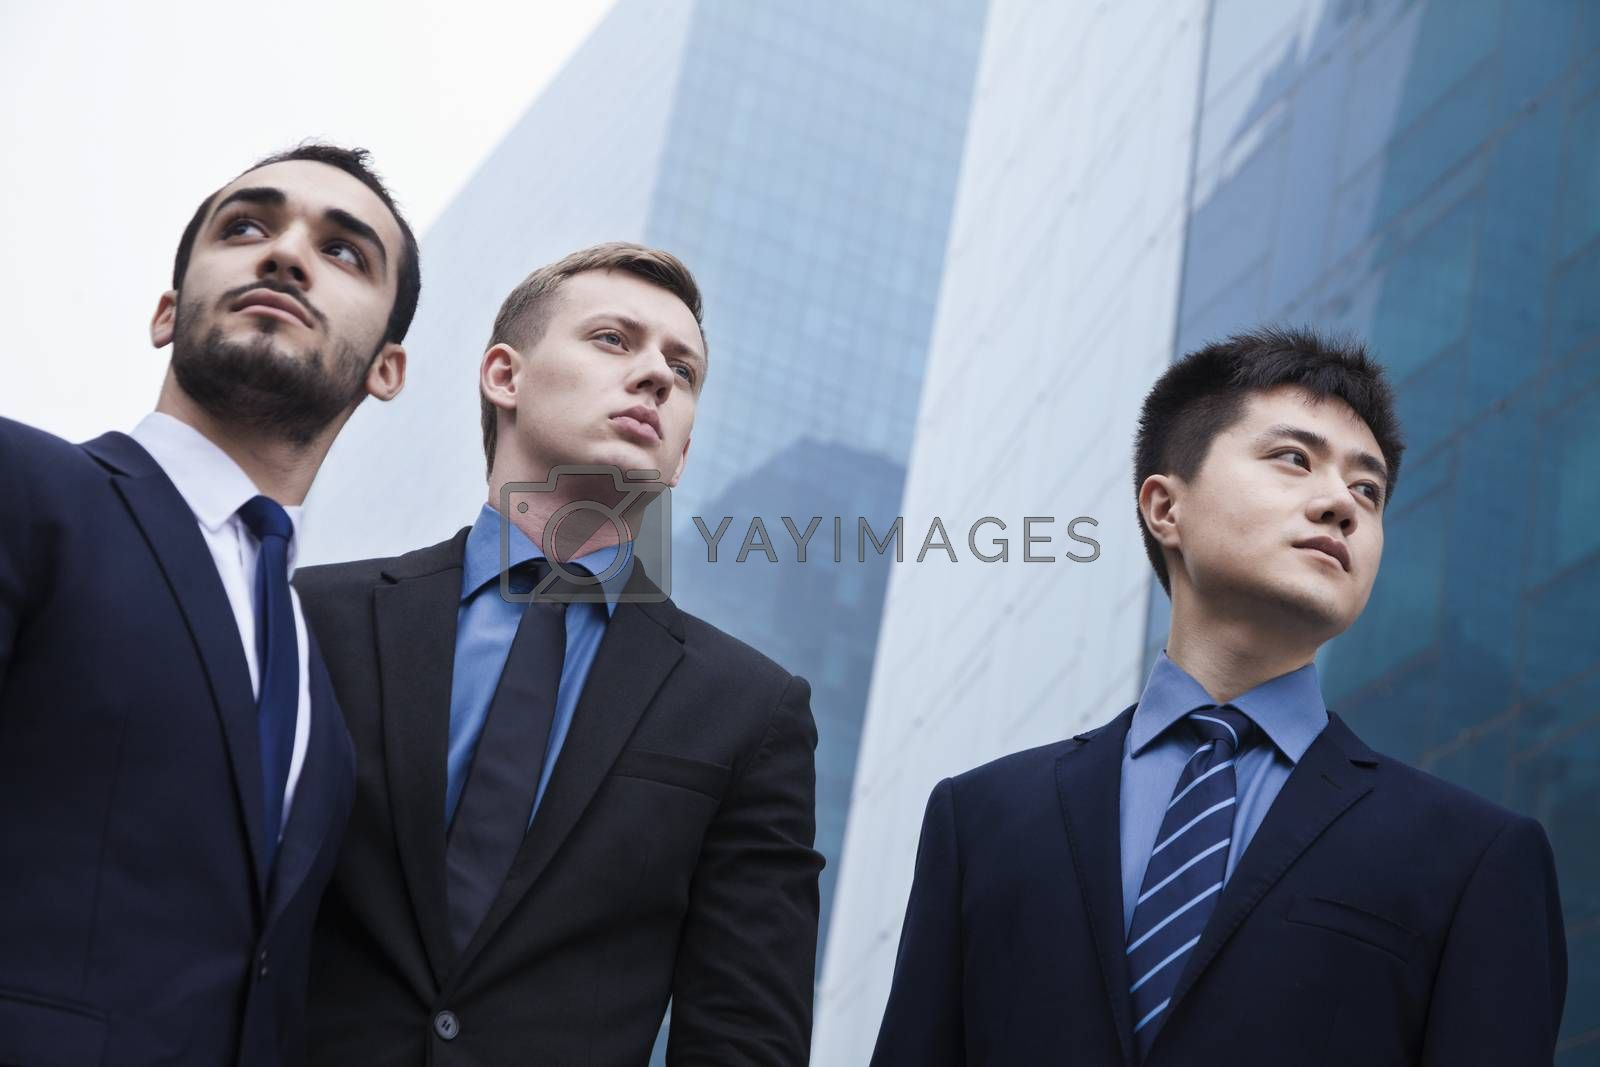 Portrait of three serious businessmen, outdoors, business district  by XiXinXing